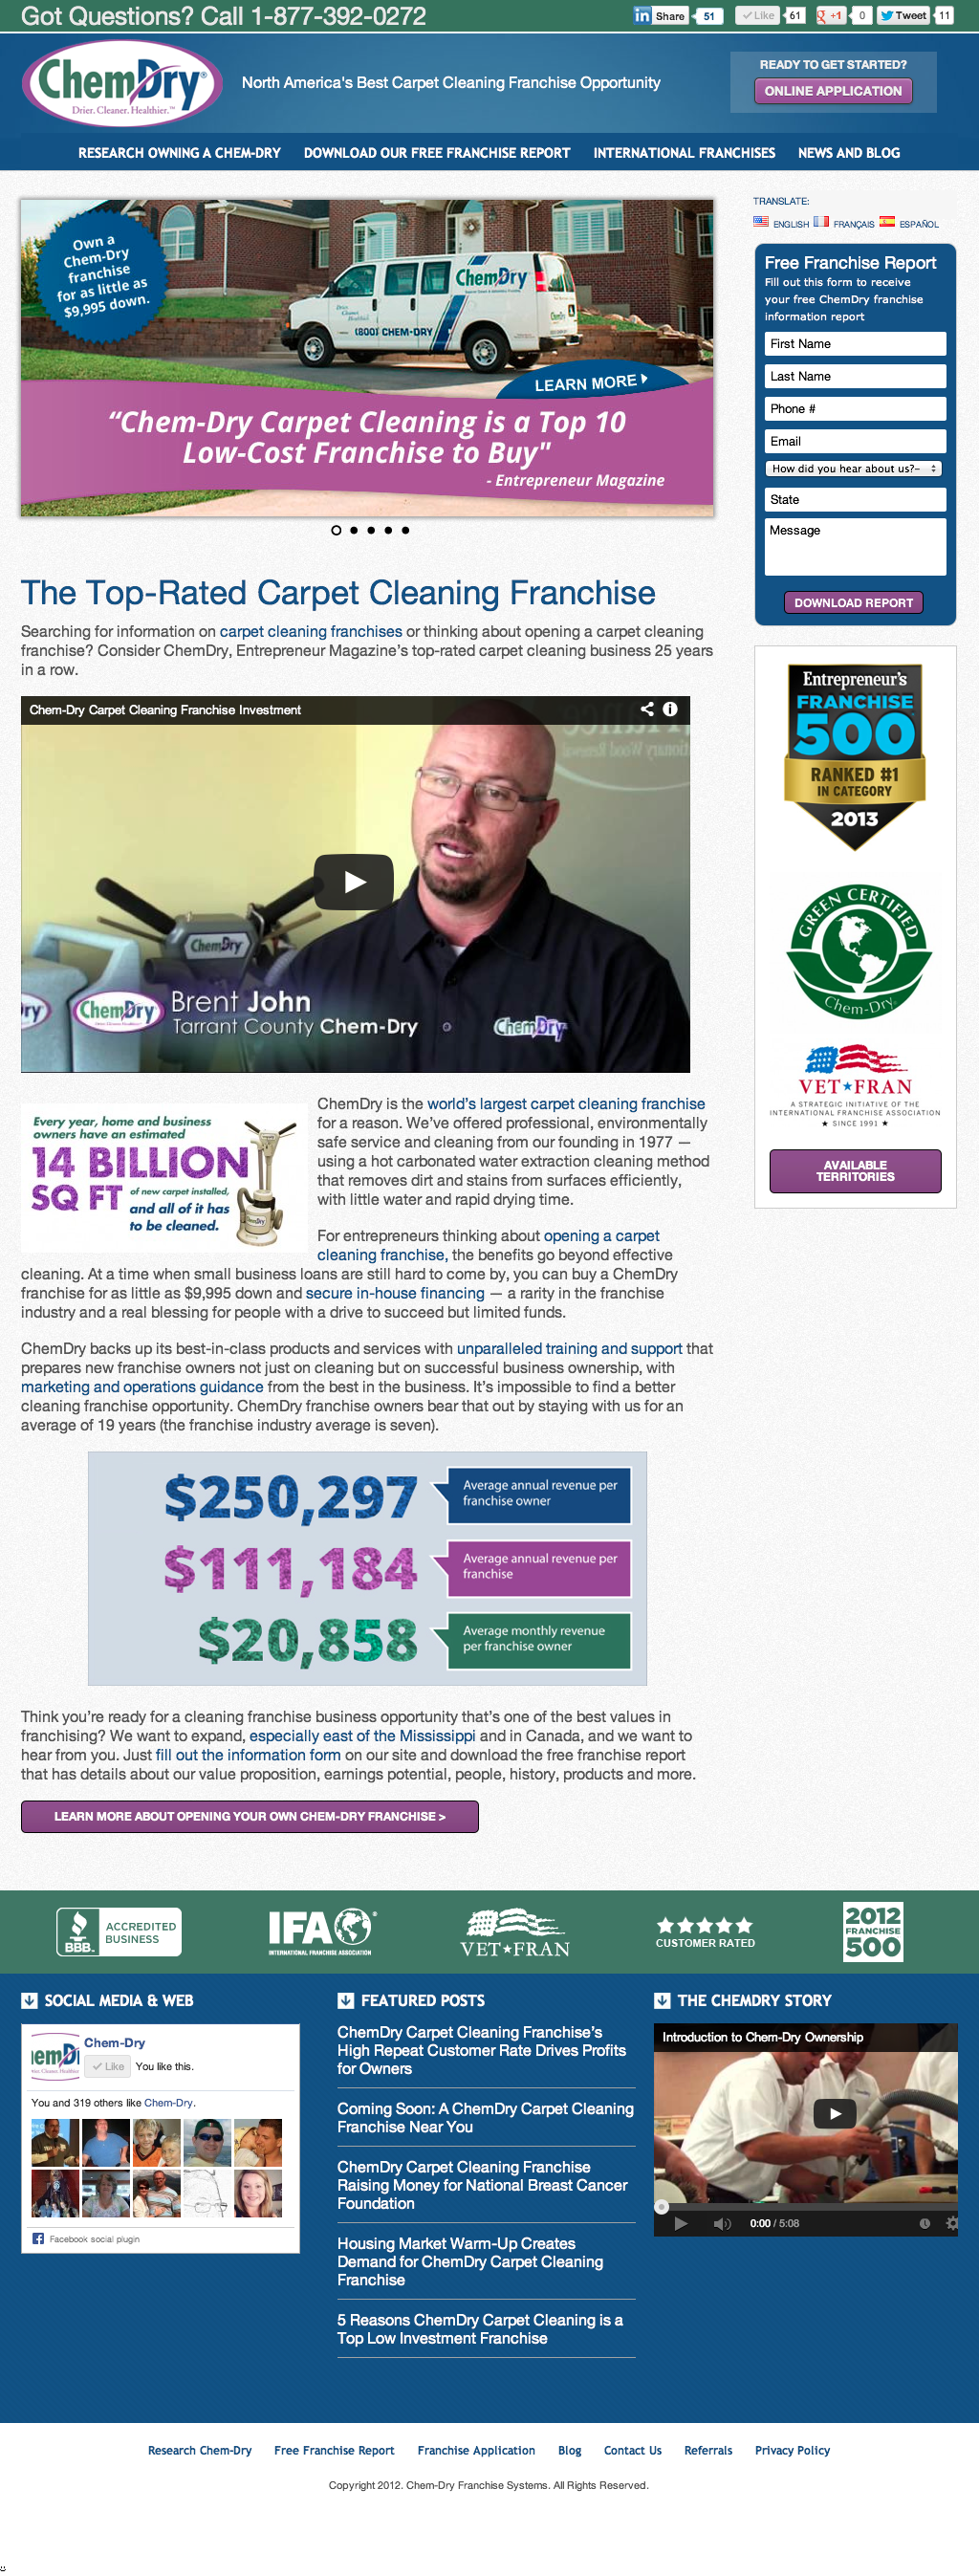 Carpet-Cleaning-Franchise-Chem-Dry-Green-Carpet-Cleaning-franchises-for-sale-20131001.png